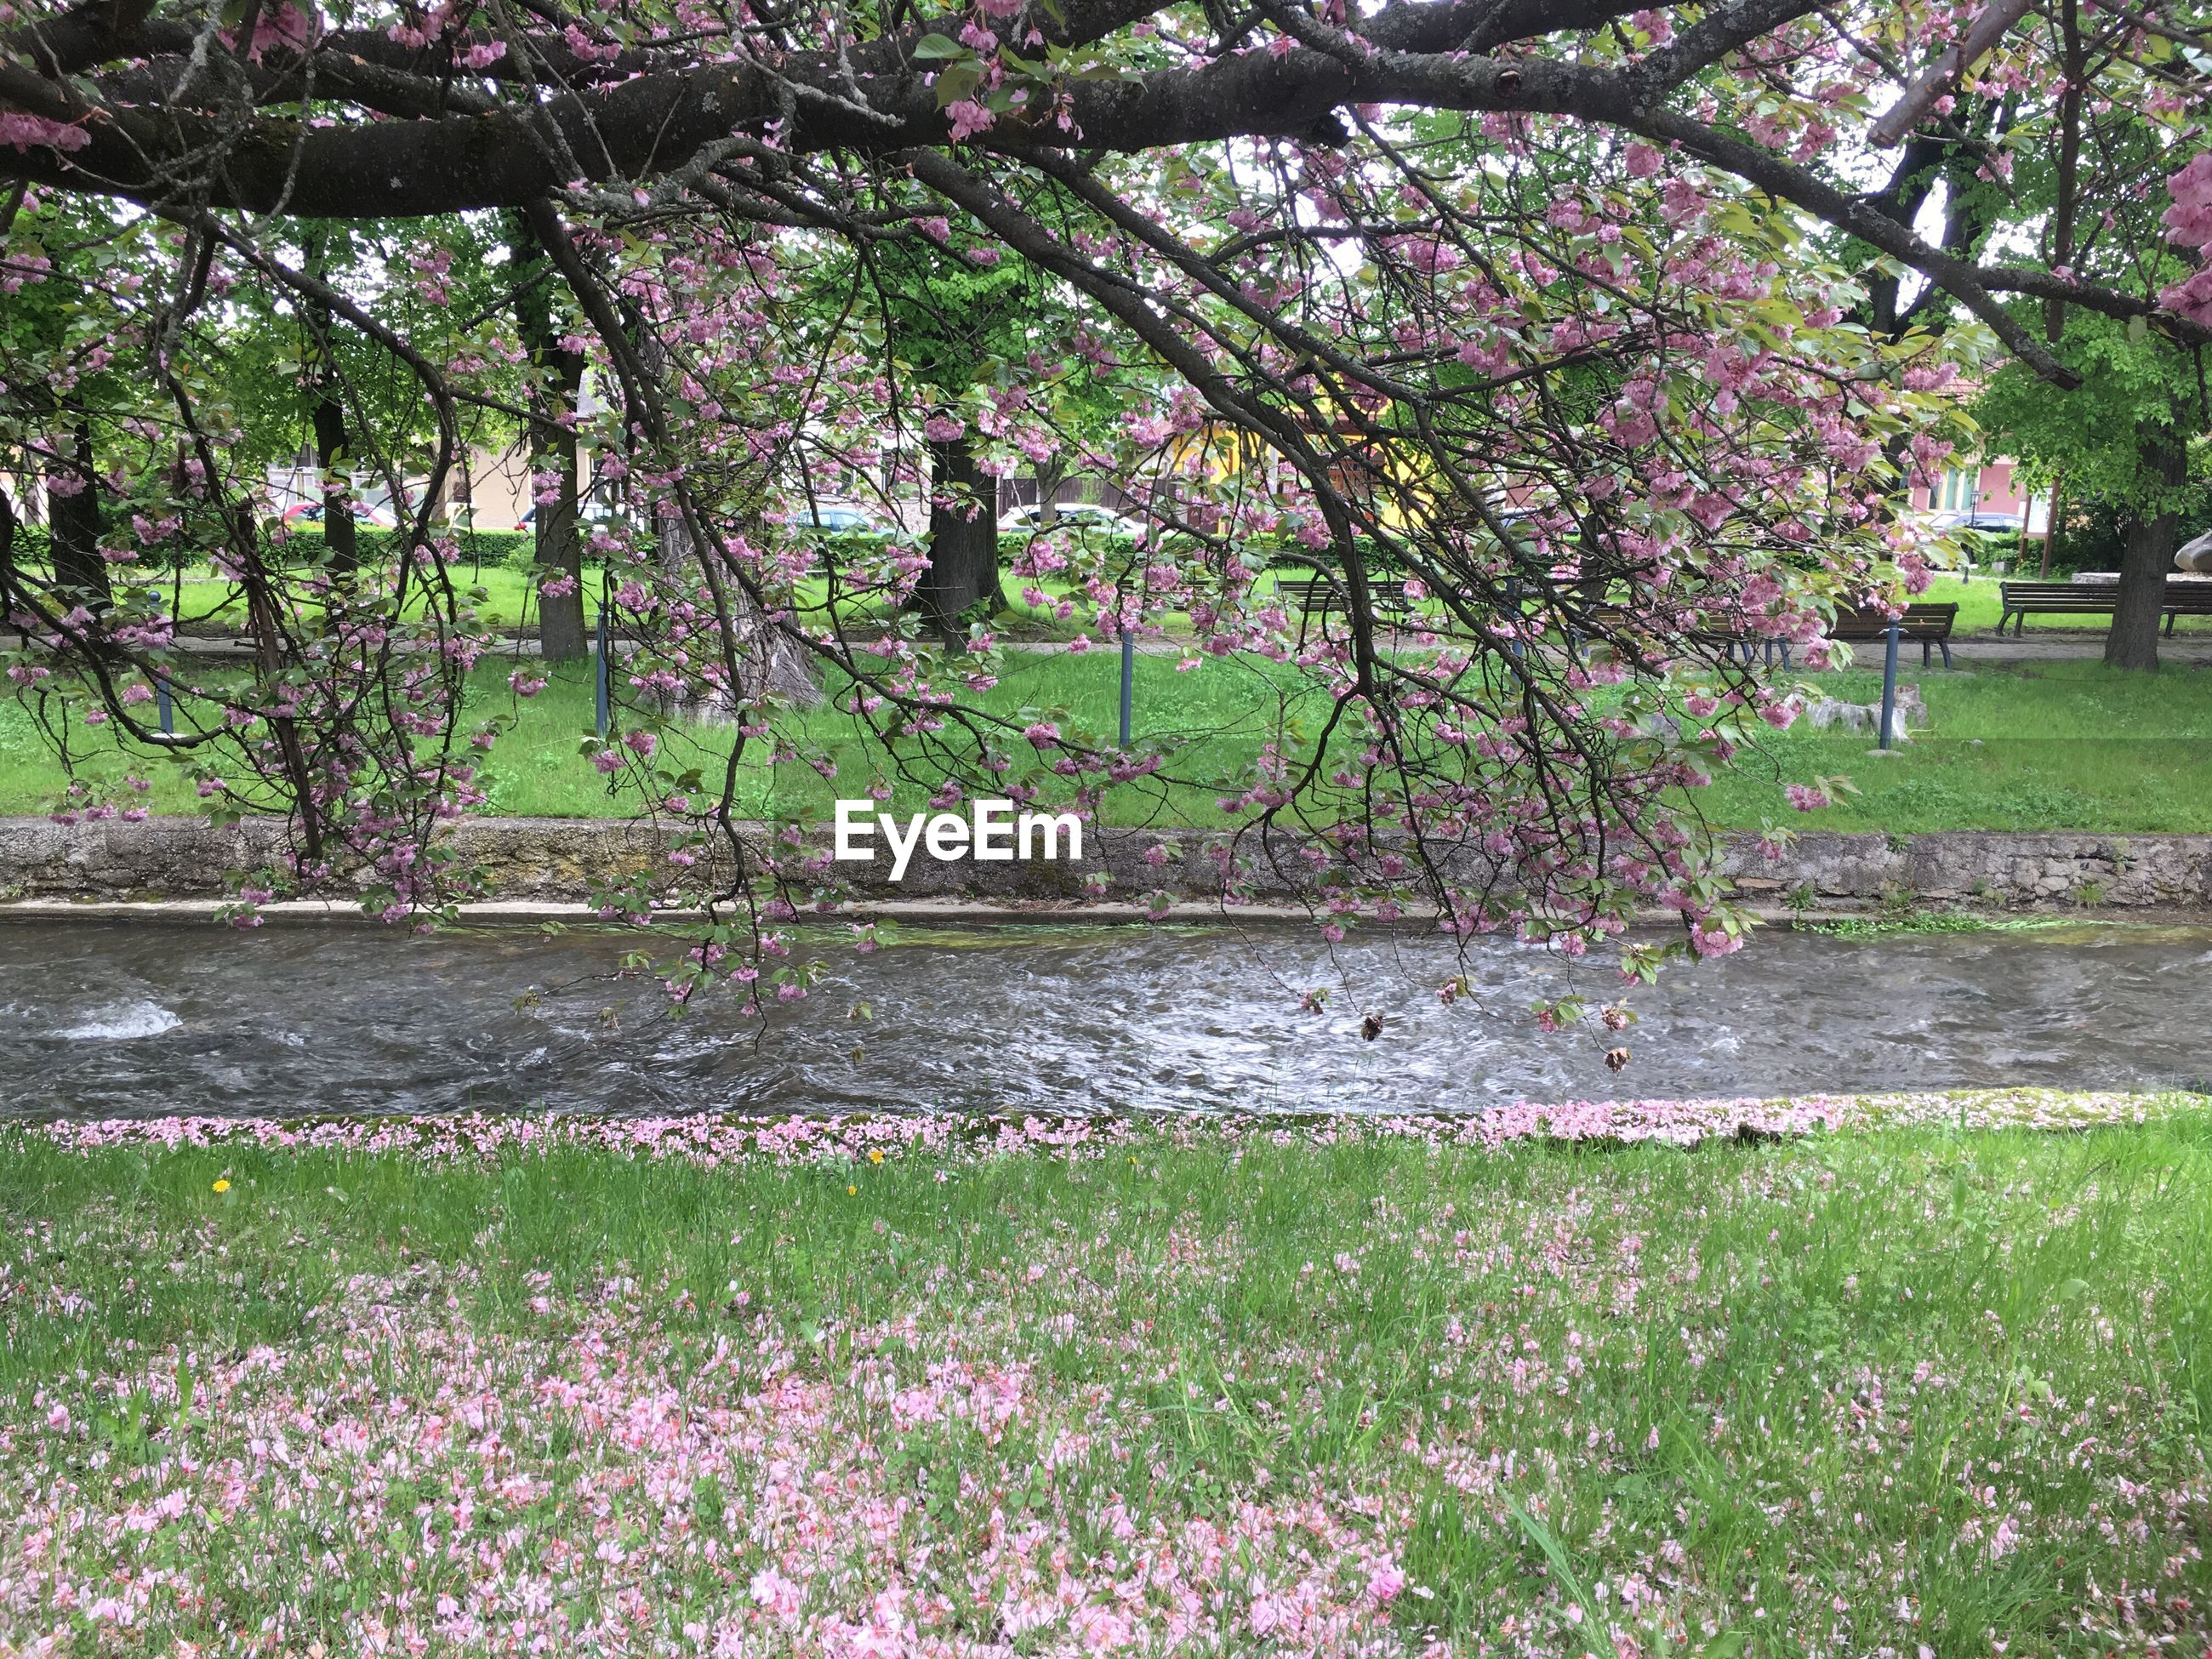 plant, flower, flowering plant, growth, beauty in nature, tree, water, nature, park, springtime, blossom, freshness, grass, pink color, day, no people, park - man made space, tranquility, fragility, outdoors, cherry blossom, cherry tree, spring